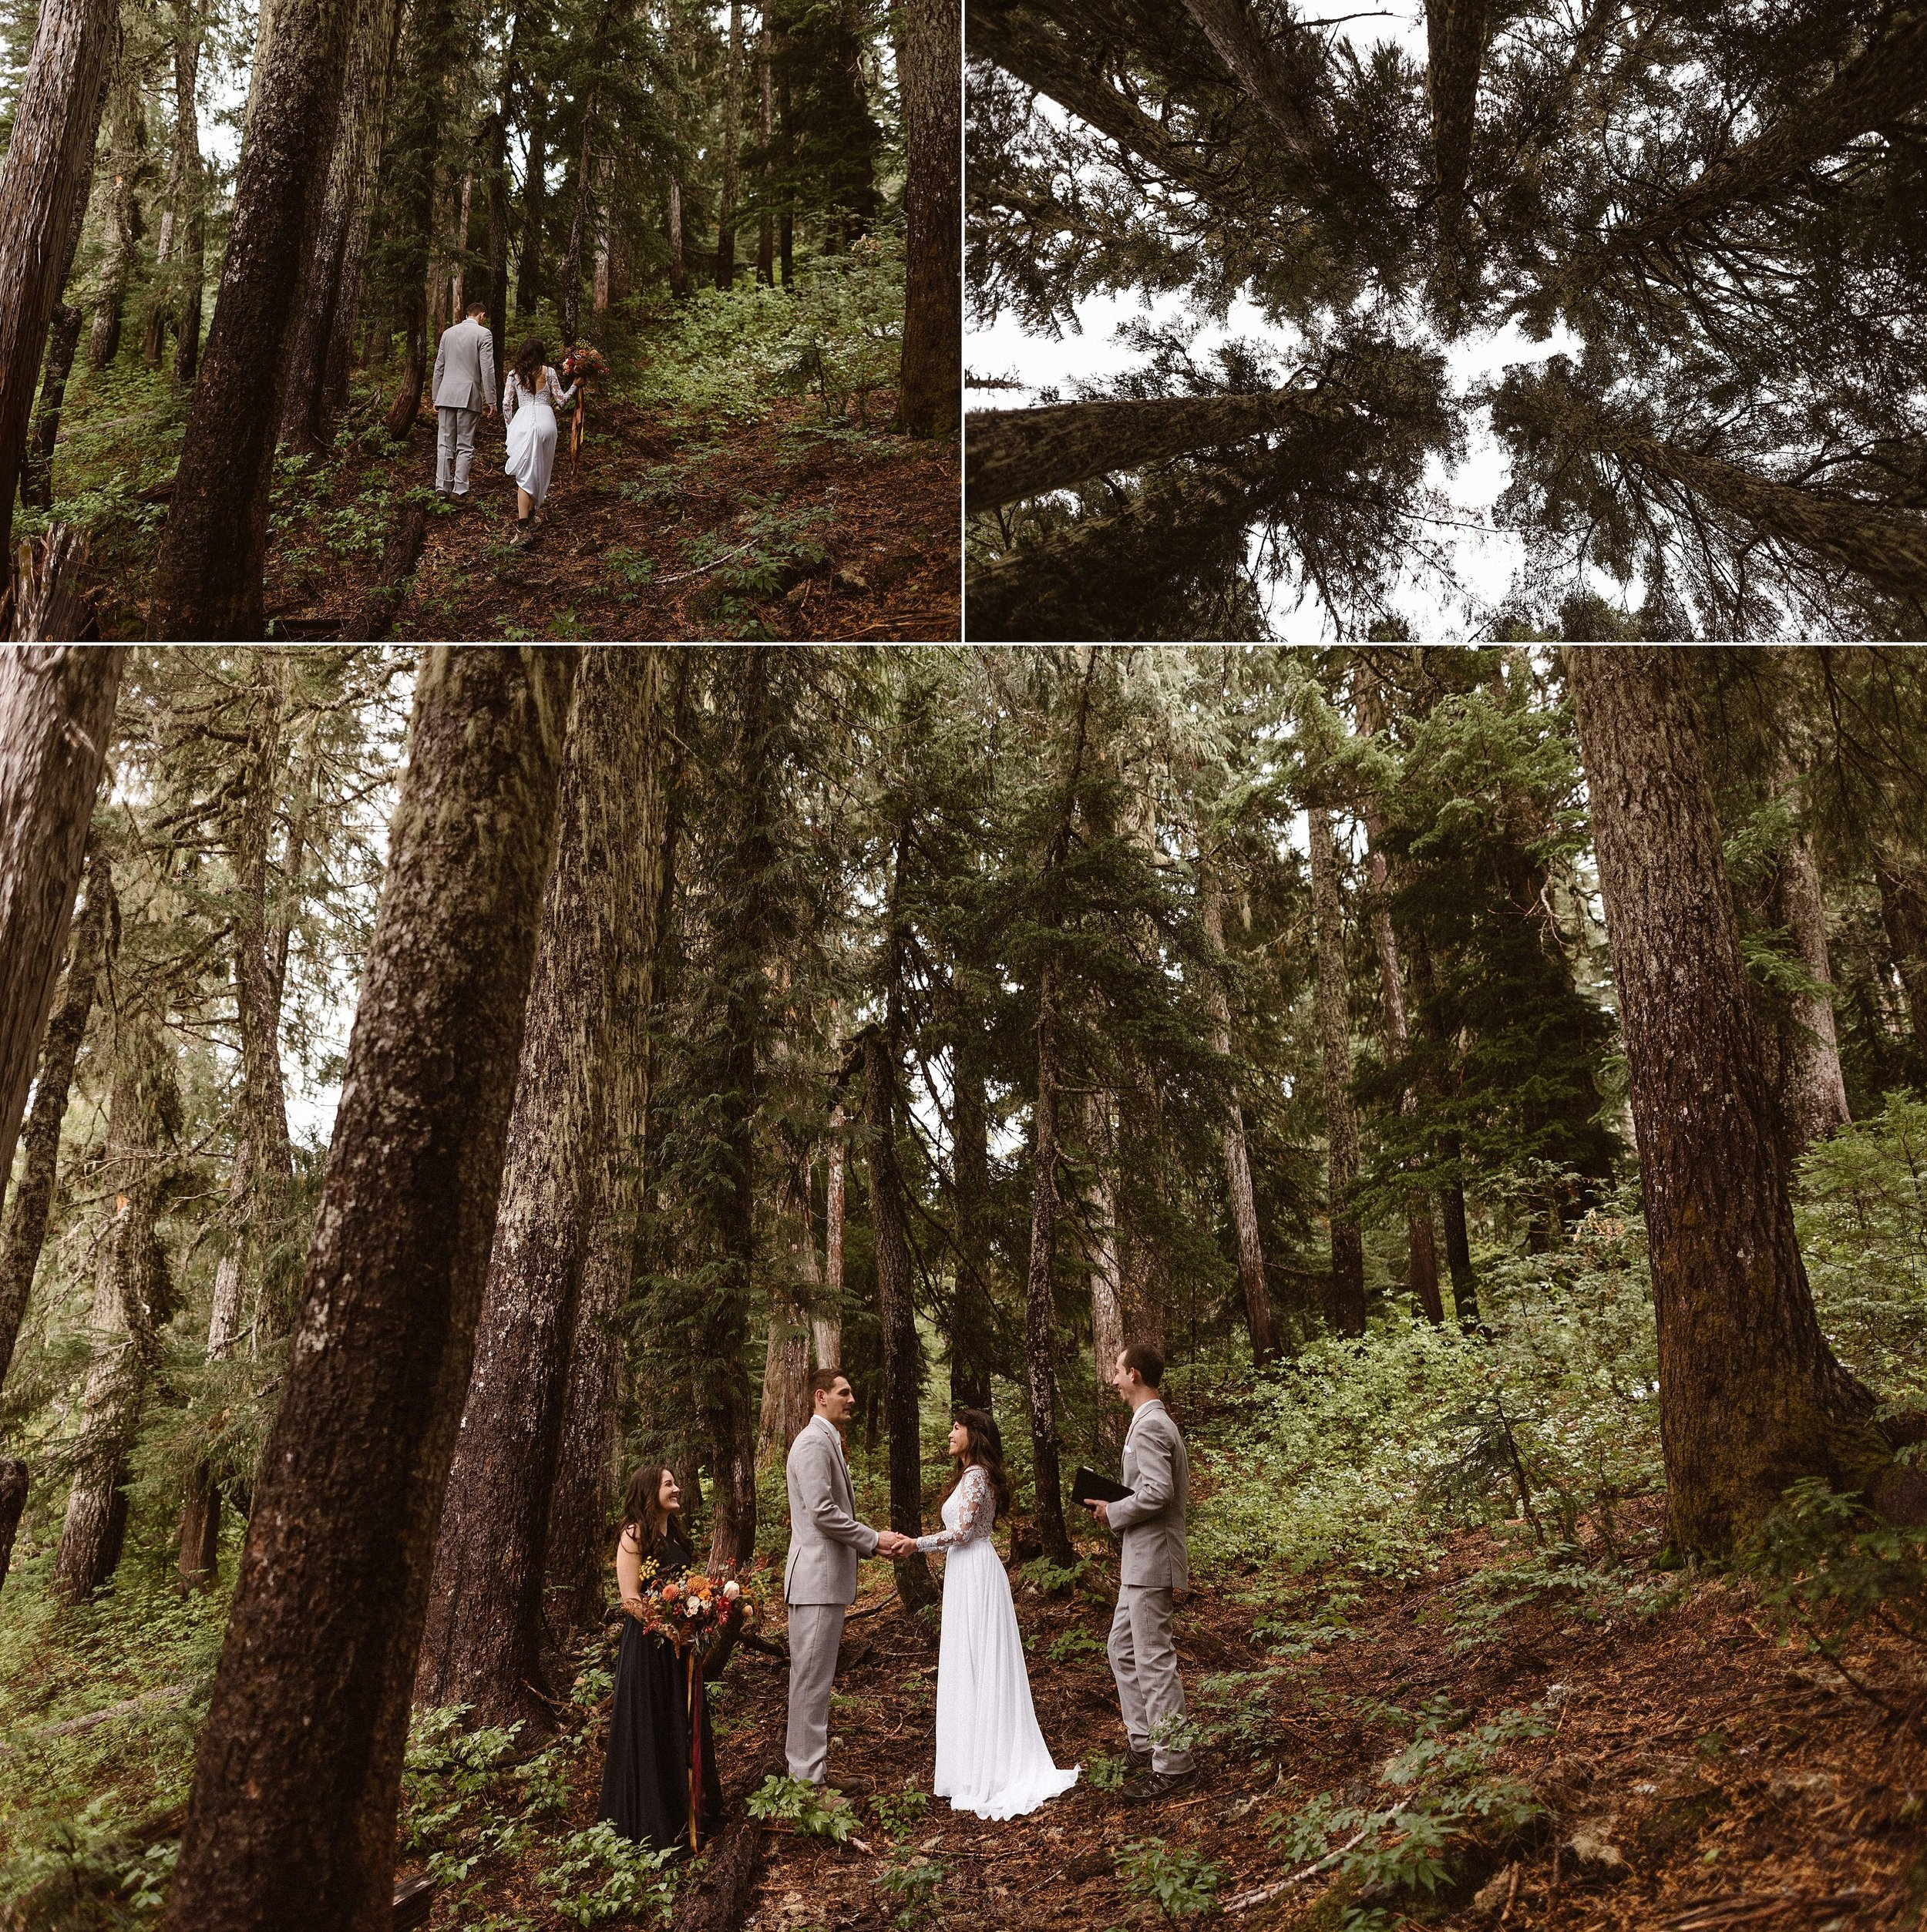 With the fog slowly starting to burn away they began their intimate wedding ceremony surrounded by the tall tress and wild ferns of Mount Rainier National Park. Flanked by two of their closest friends as their witnesses Resa and Grant glowed with delight. This romantic forest elopement captured by traveling elopement photographer Maddie Mae.